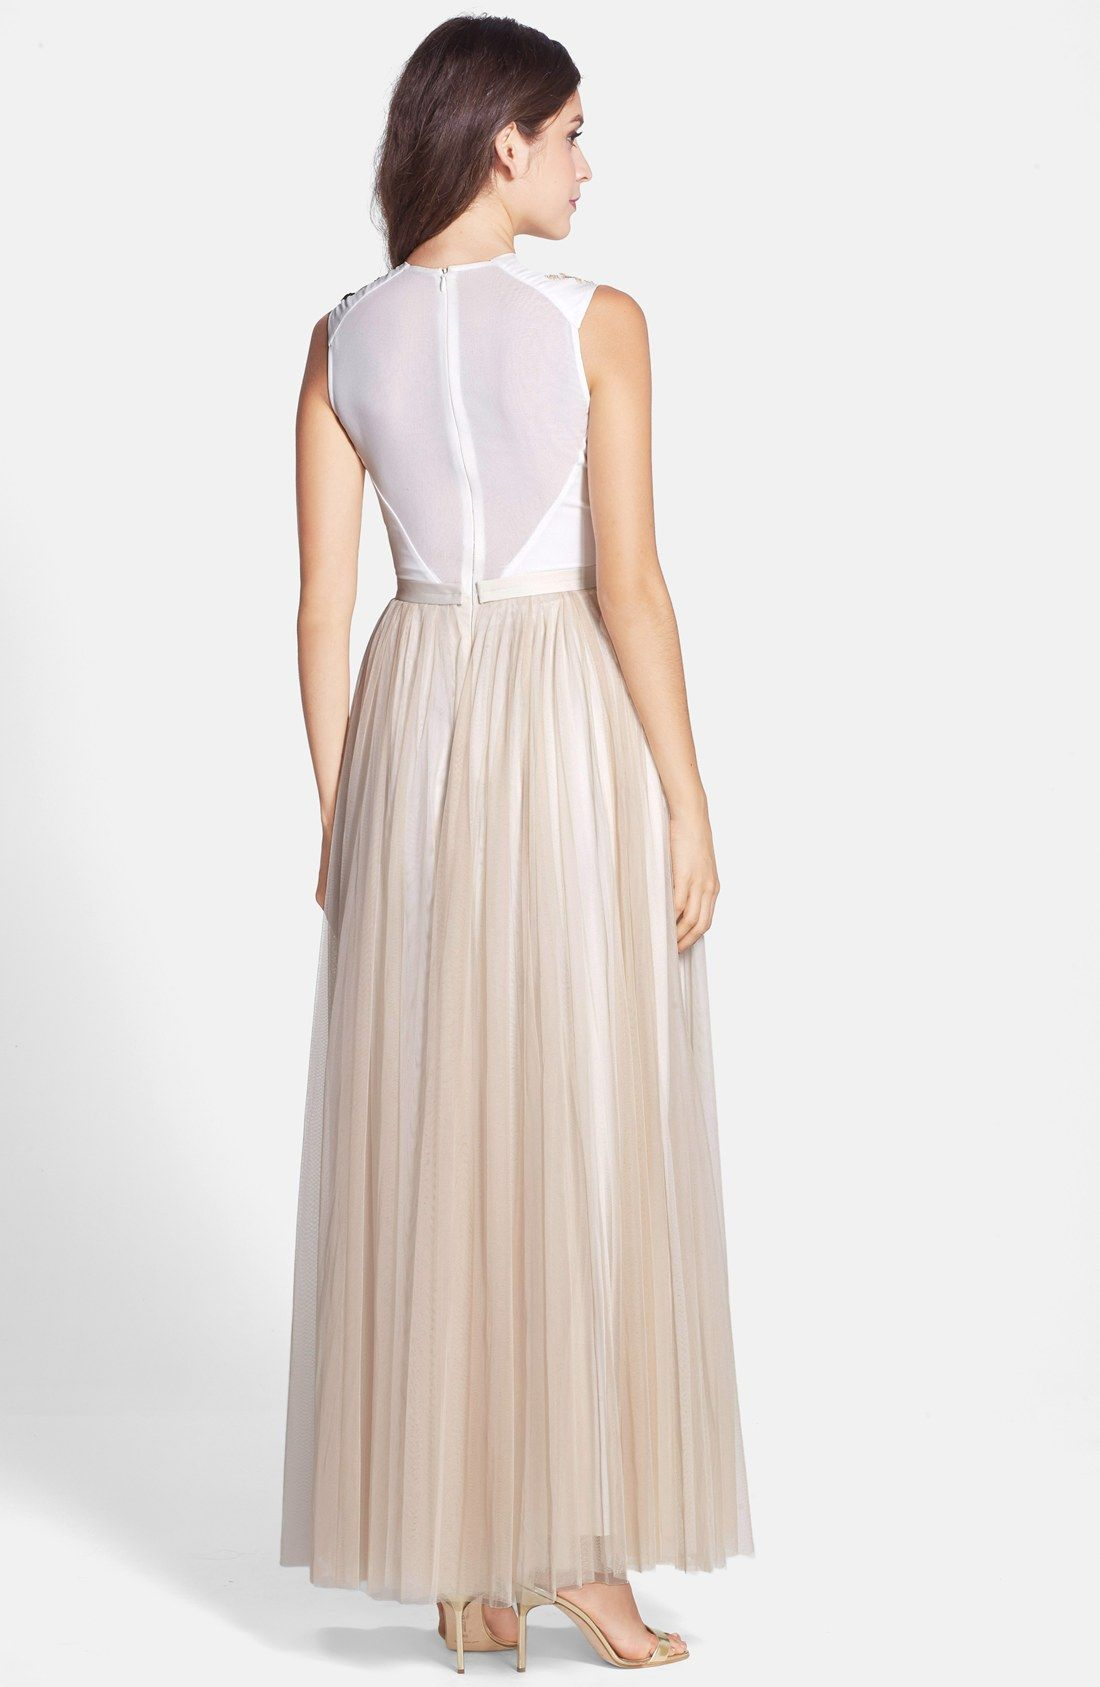 Needle & Thread \'Trailing Floral\' Embellished Gown | Bridesmaid ...